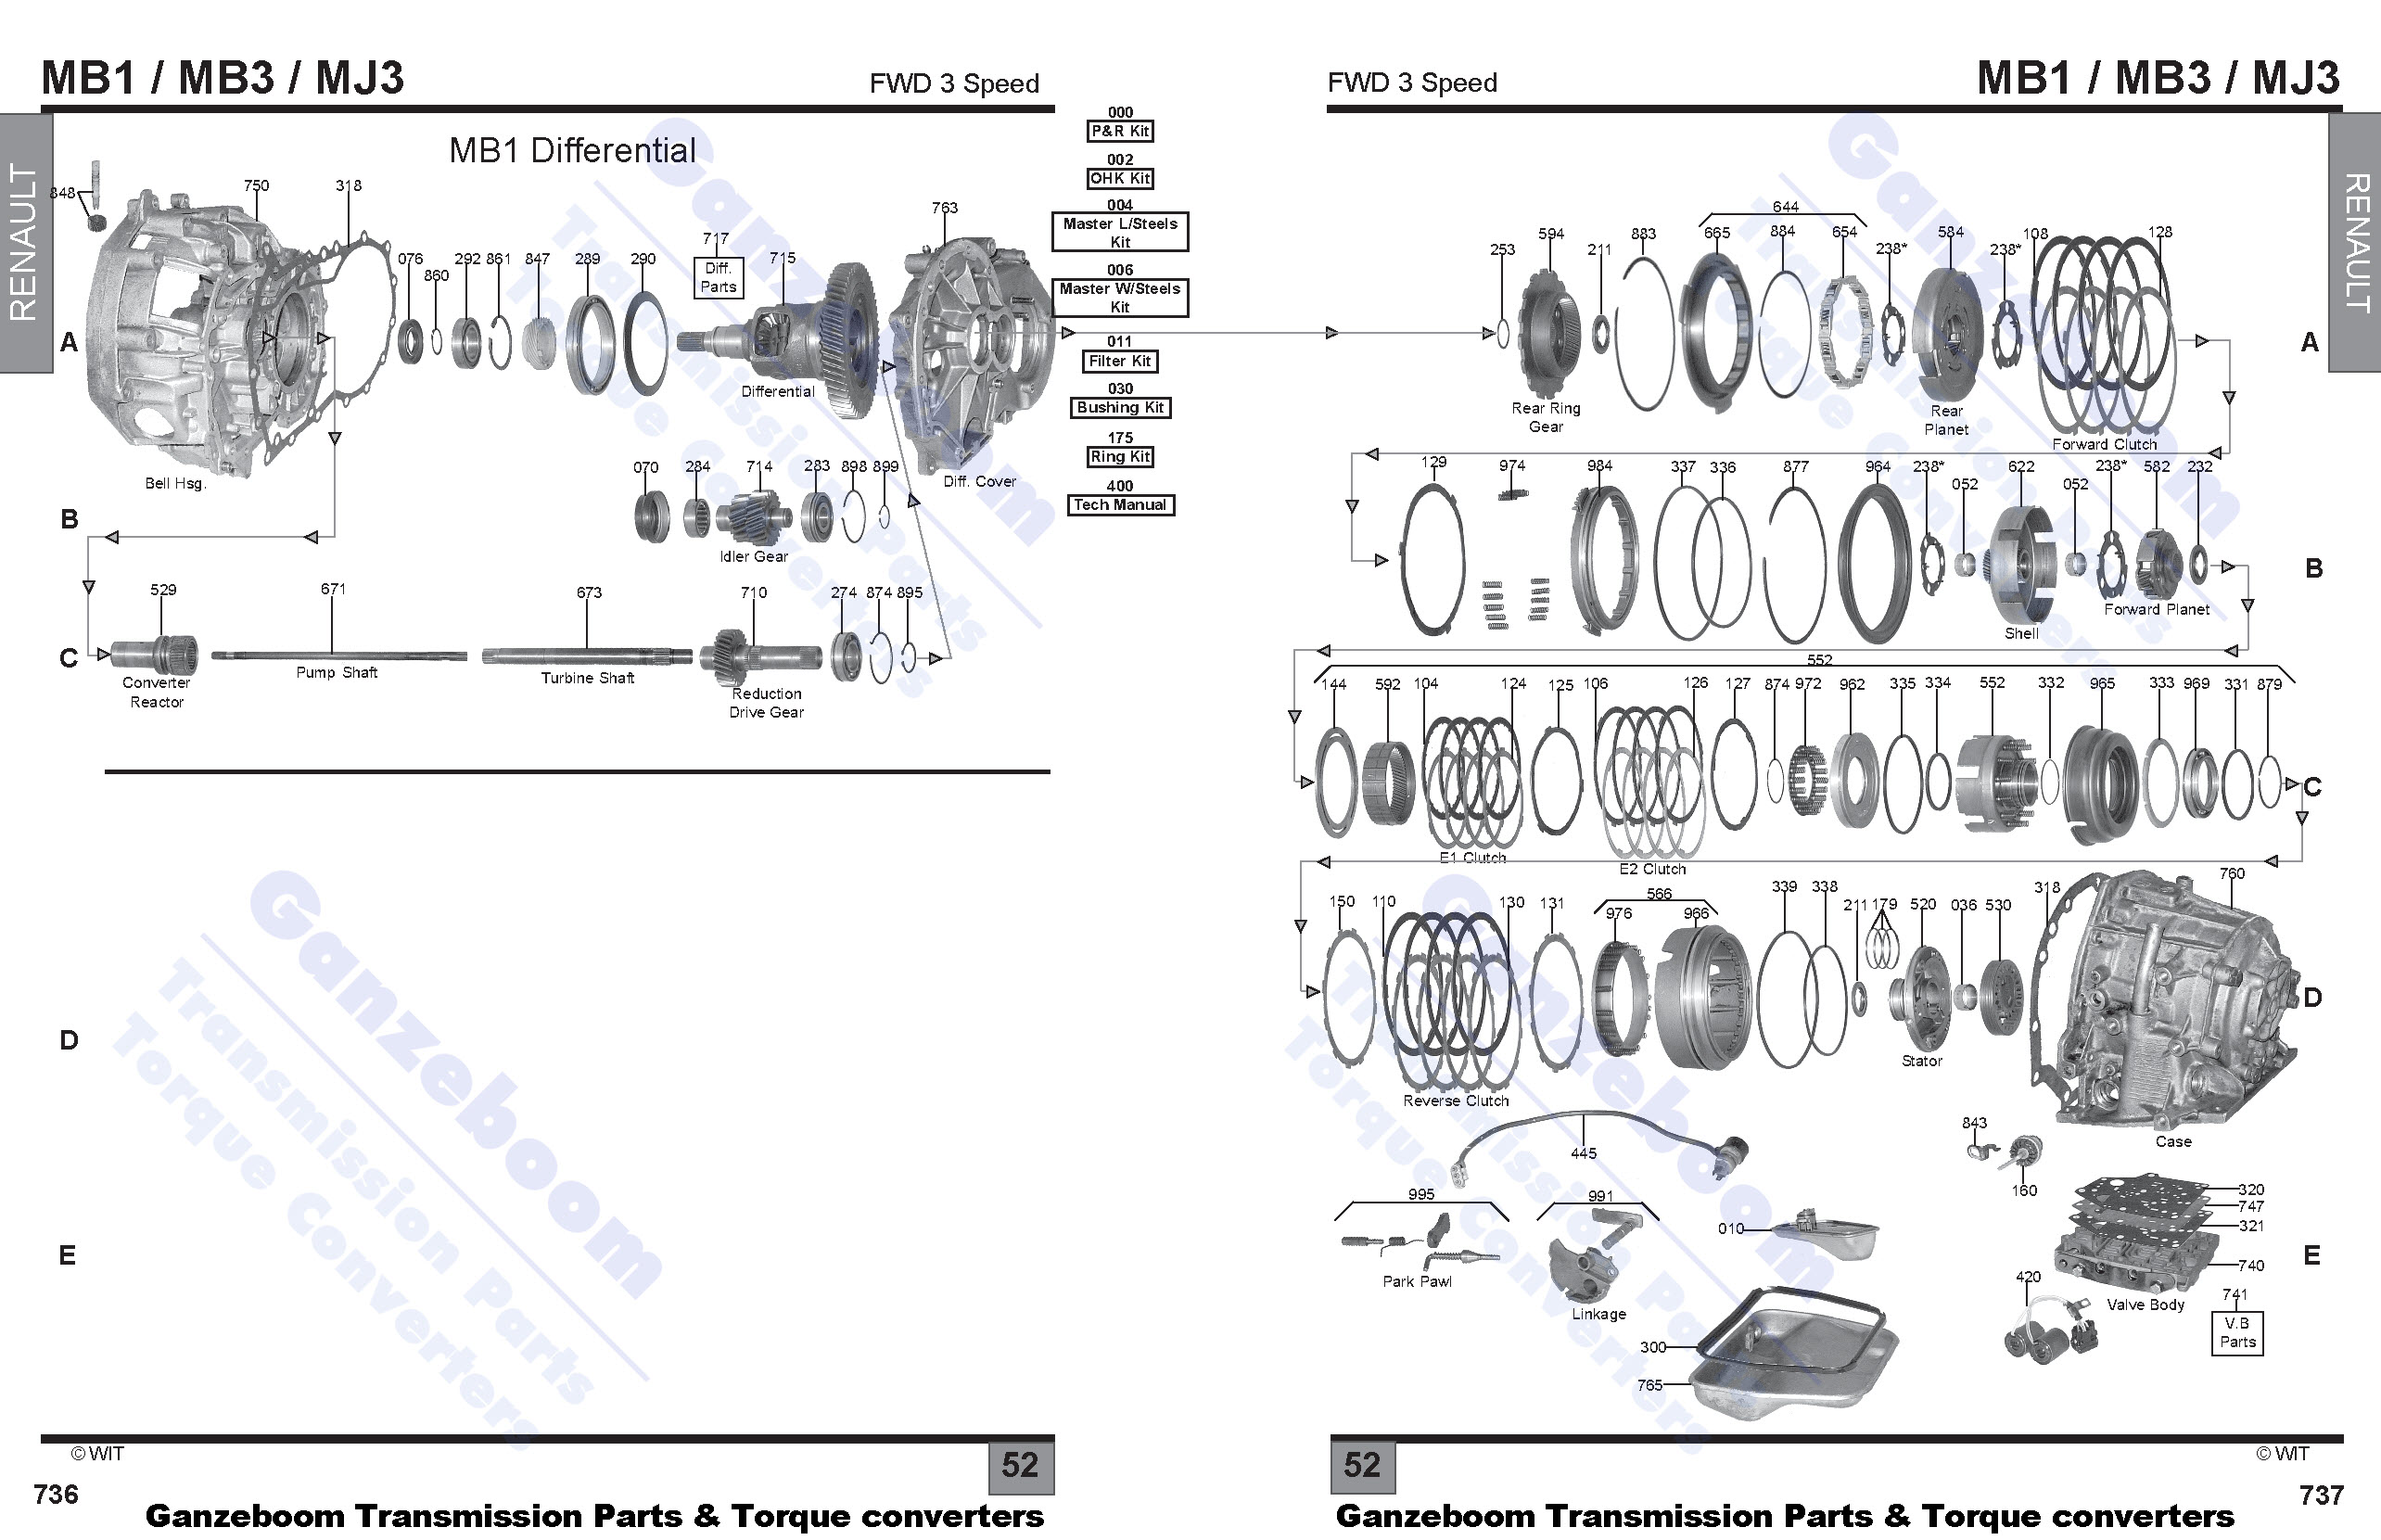 Steuerkette Spannen as well 485854 Wiring A Pac Tr7 To Avh P4200dvd also Nissan pathfinder o2 air fuel sensor location further Renault further 3vjn2 Serpentine Belt Routing Diagram Ford V 10 Motor Home. on nissan an